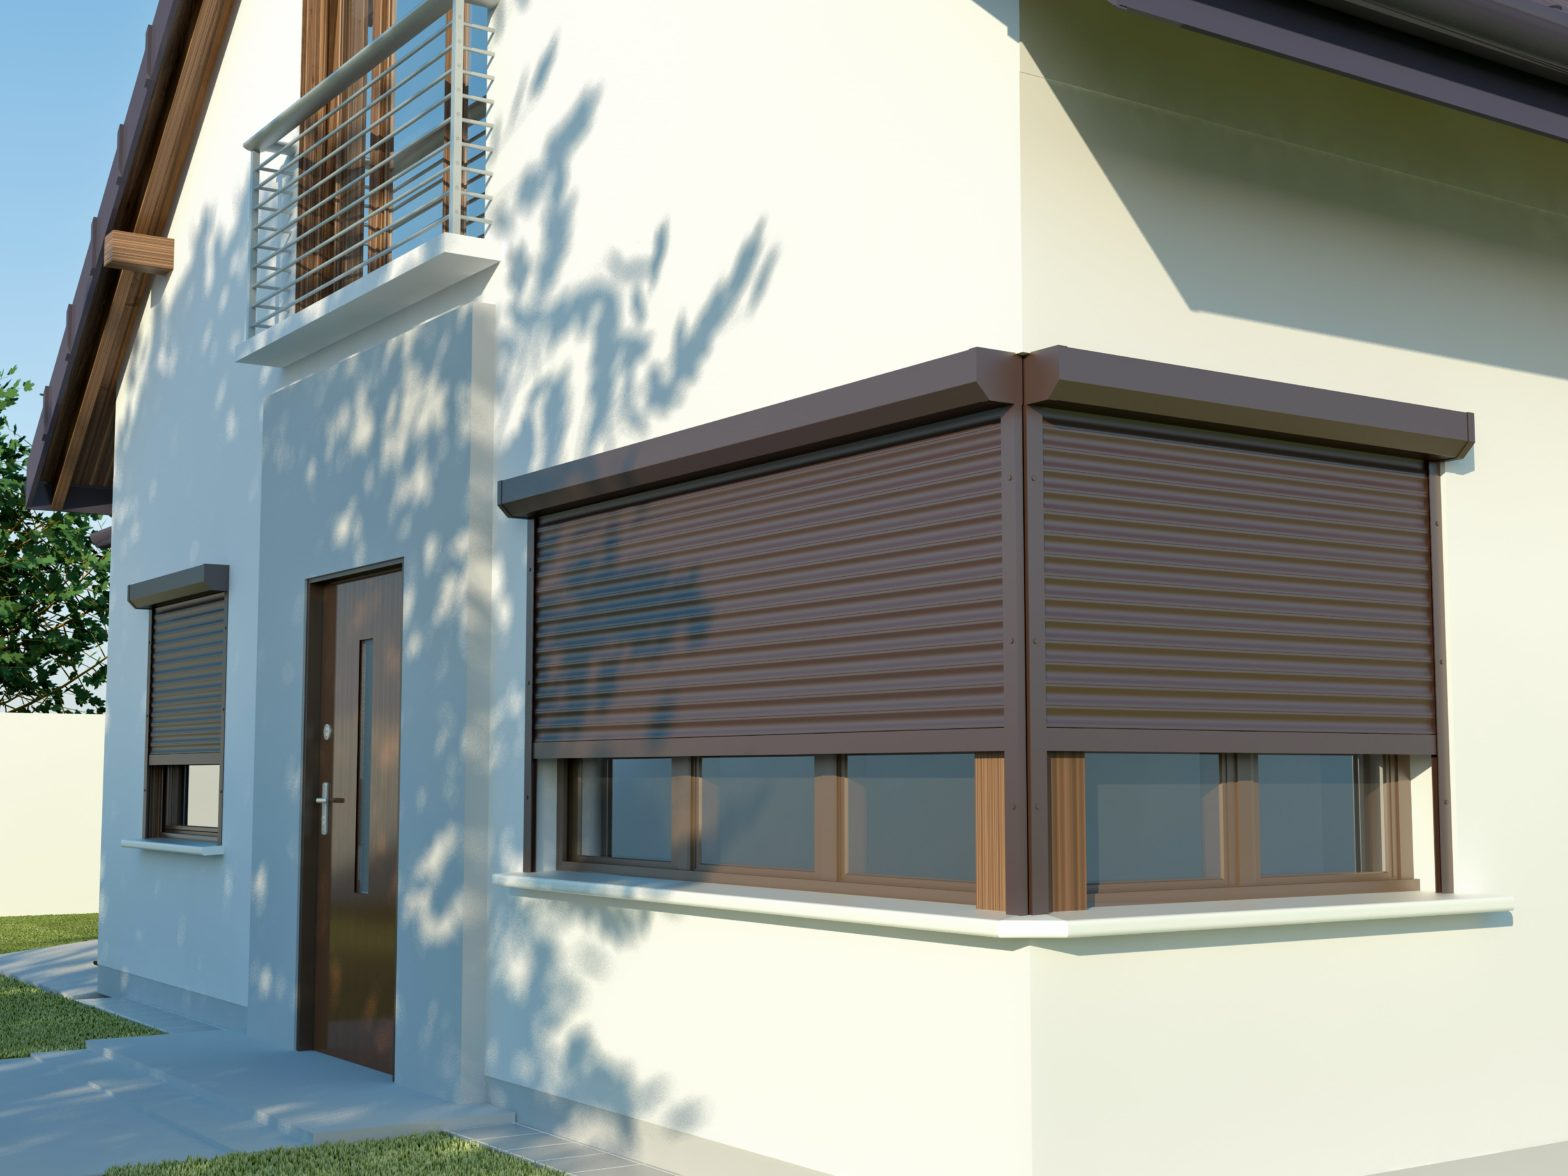 Roller Shutters Visual, Mental and Physical Presence Deters Intruders and Increases Home Security